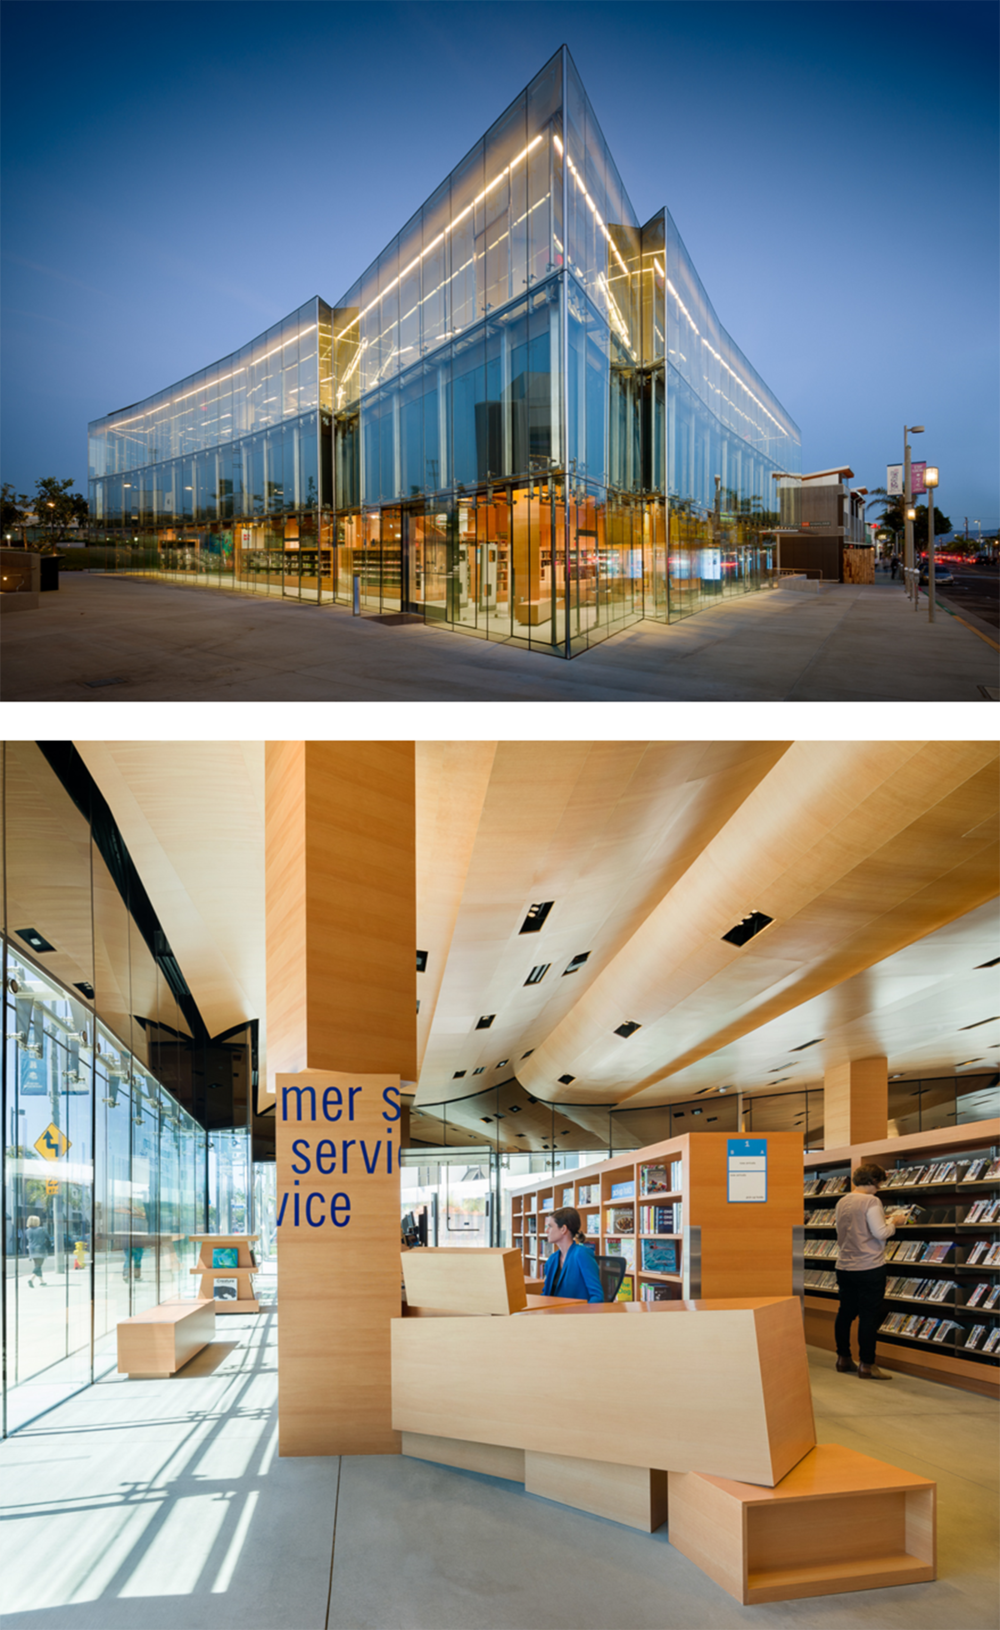 MANHATTAN BEACH LIBRARY The new library is designed for maximum transparency at street level and views out across Santa Monica bay and the city at the upper level. This creates a building at once friendly and accessible as well as intimately connected to its geographic setting and climate.